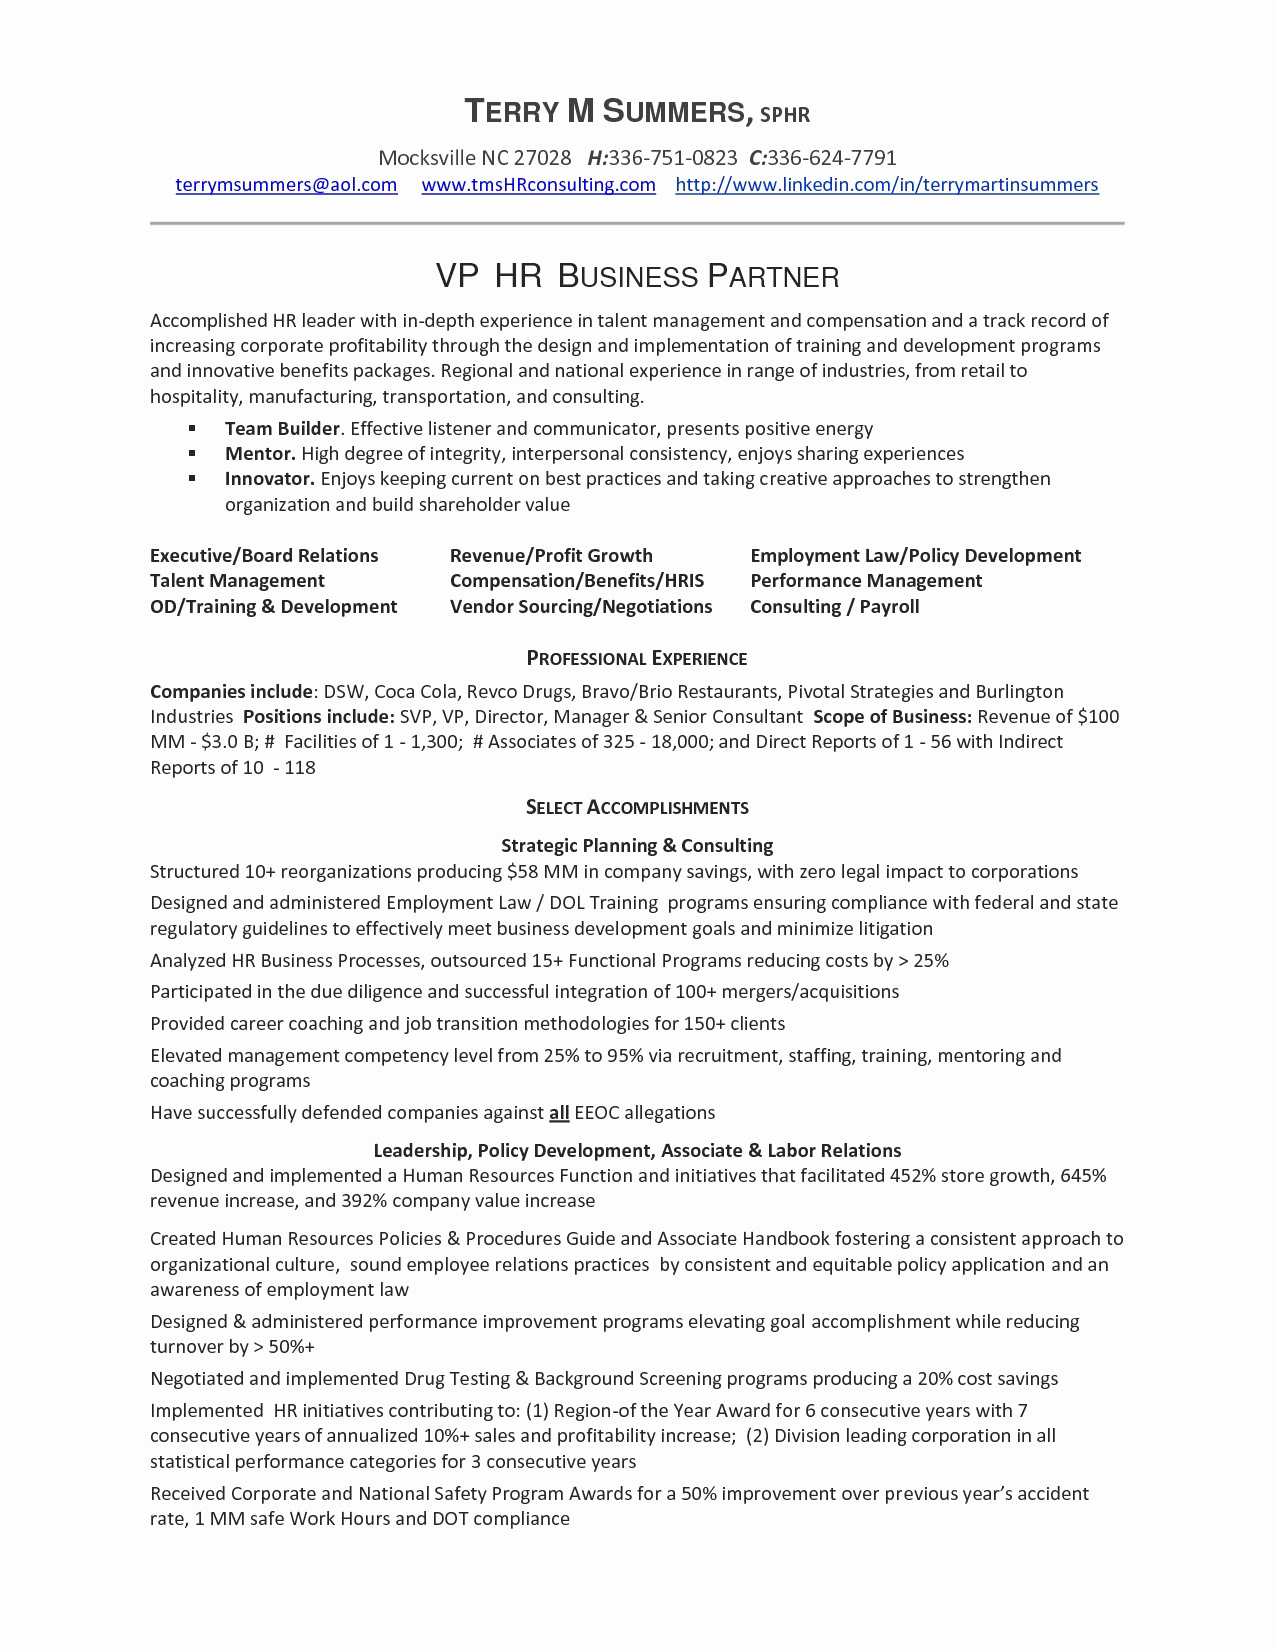 Writing A formal Letter Template - Business Analyst Skills Resume Beautiful Business Analyst Resume